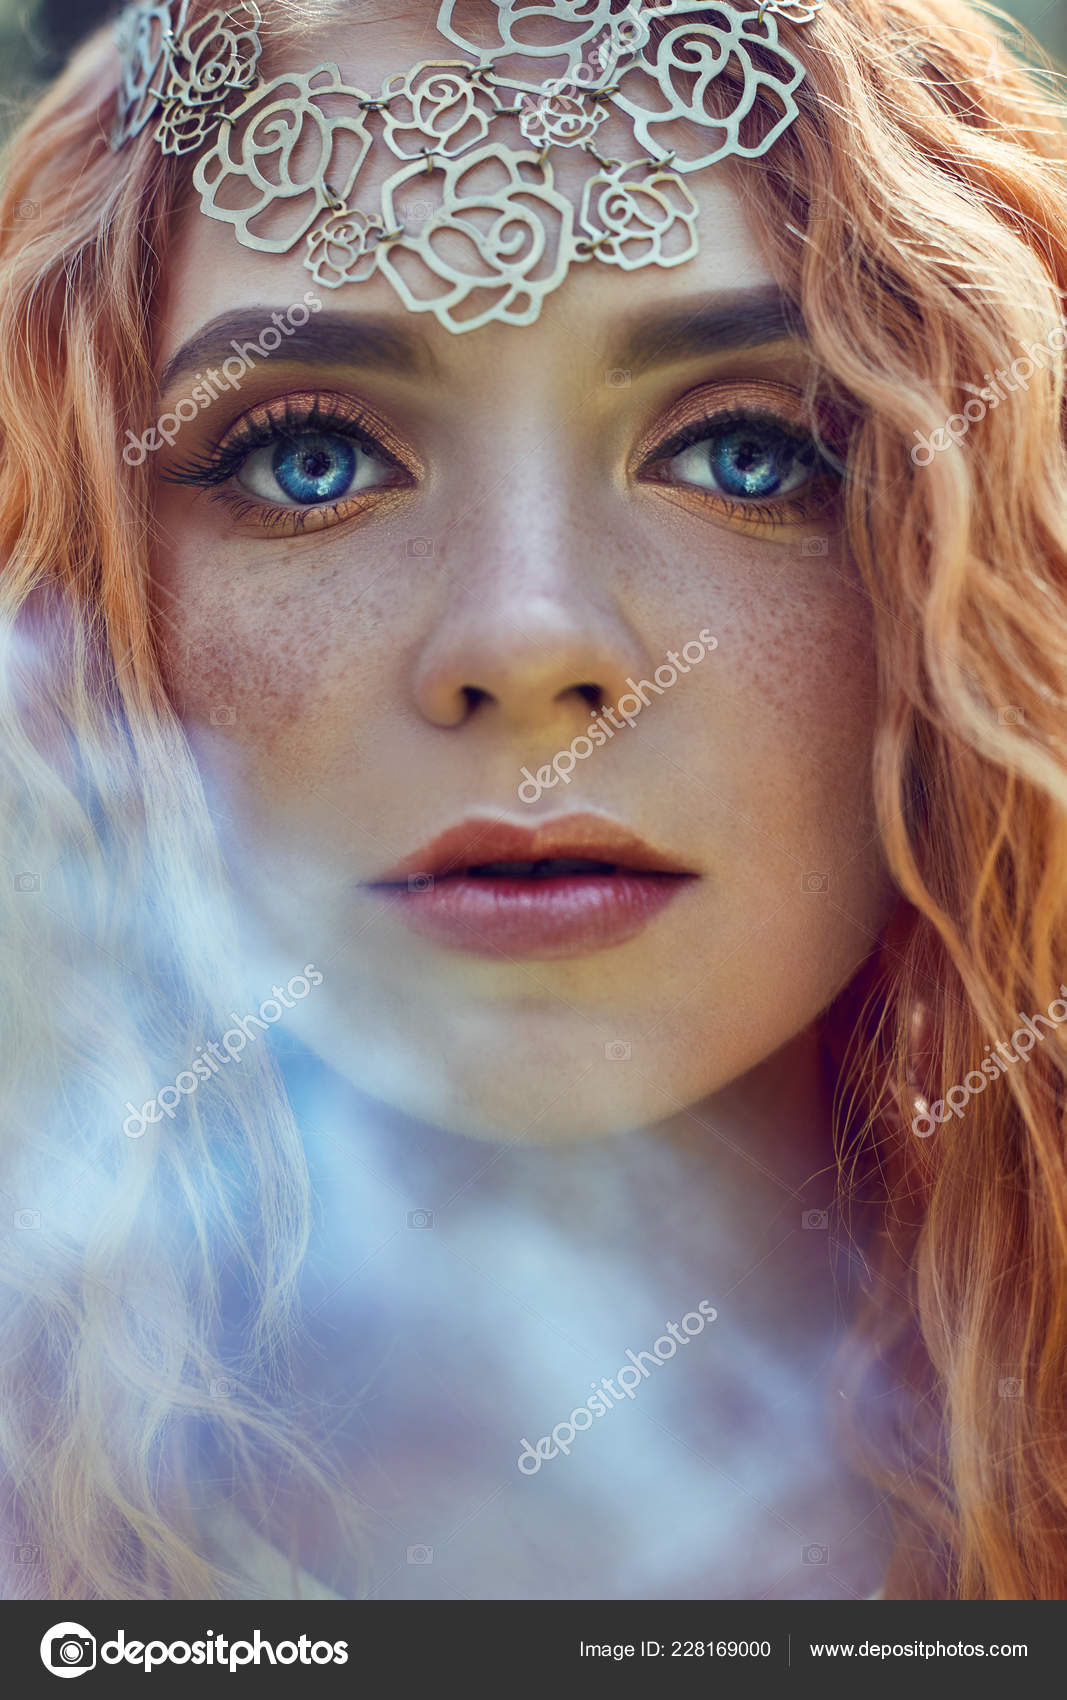 Me? beautiful redhead girls with freckles excellent topic